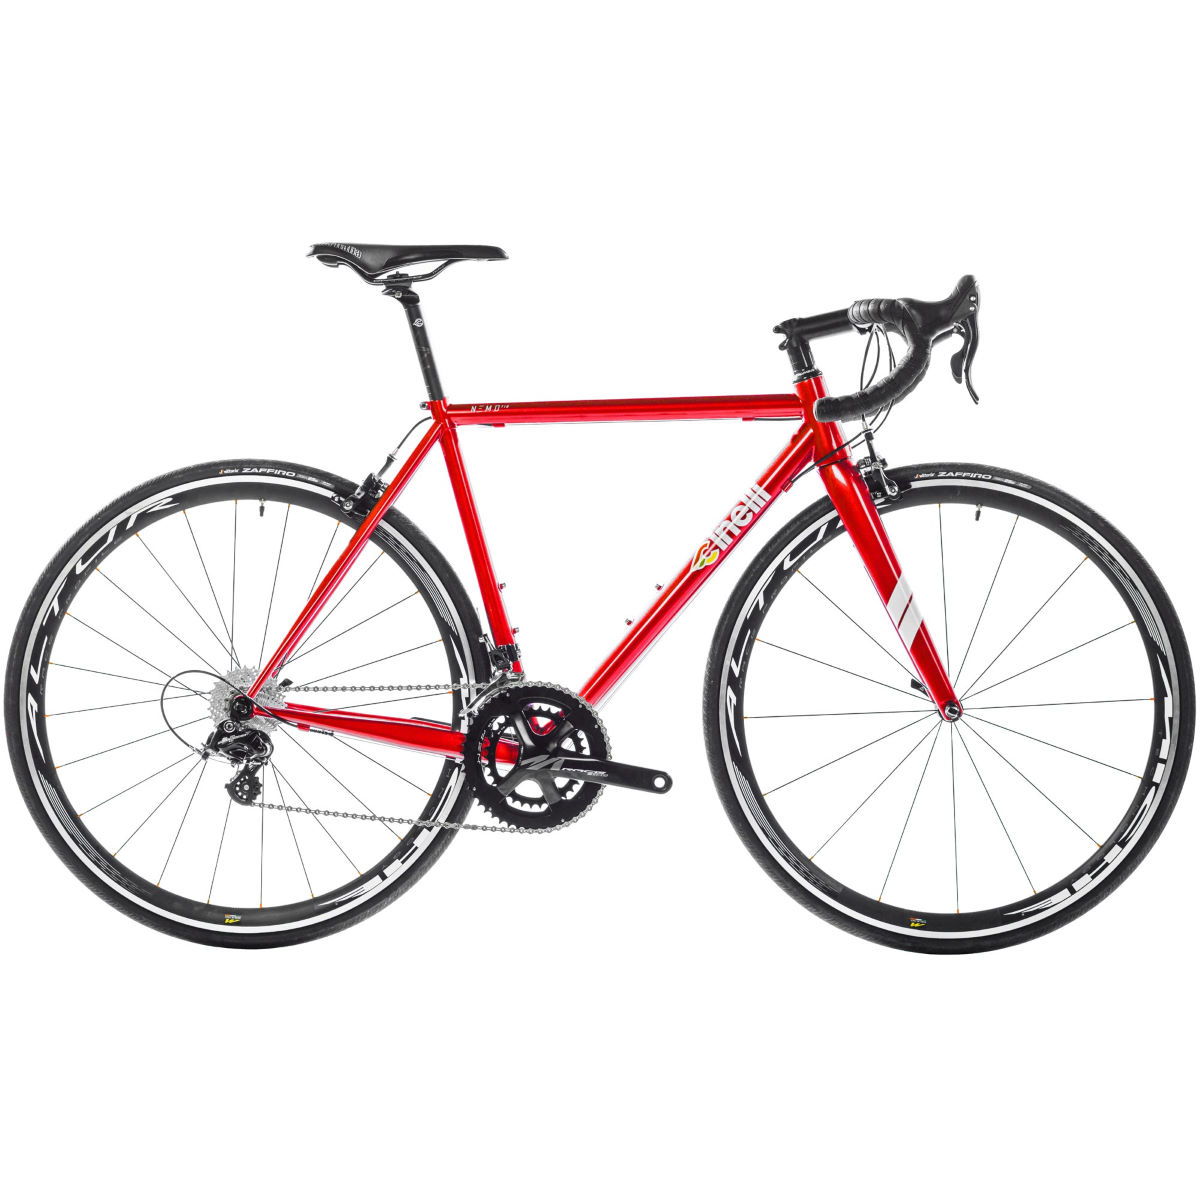 Vélo de route Cinelli Nemo Tig (Potenza, 2017) - L Stock Bike Rouge